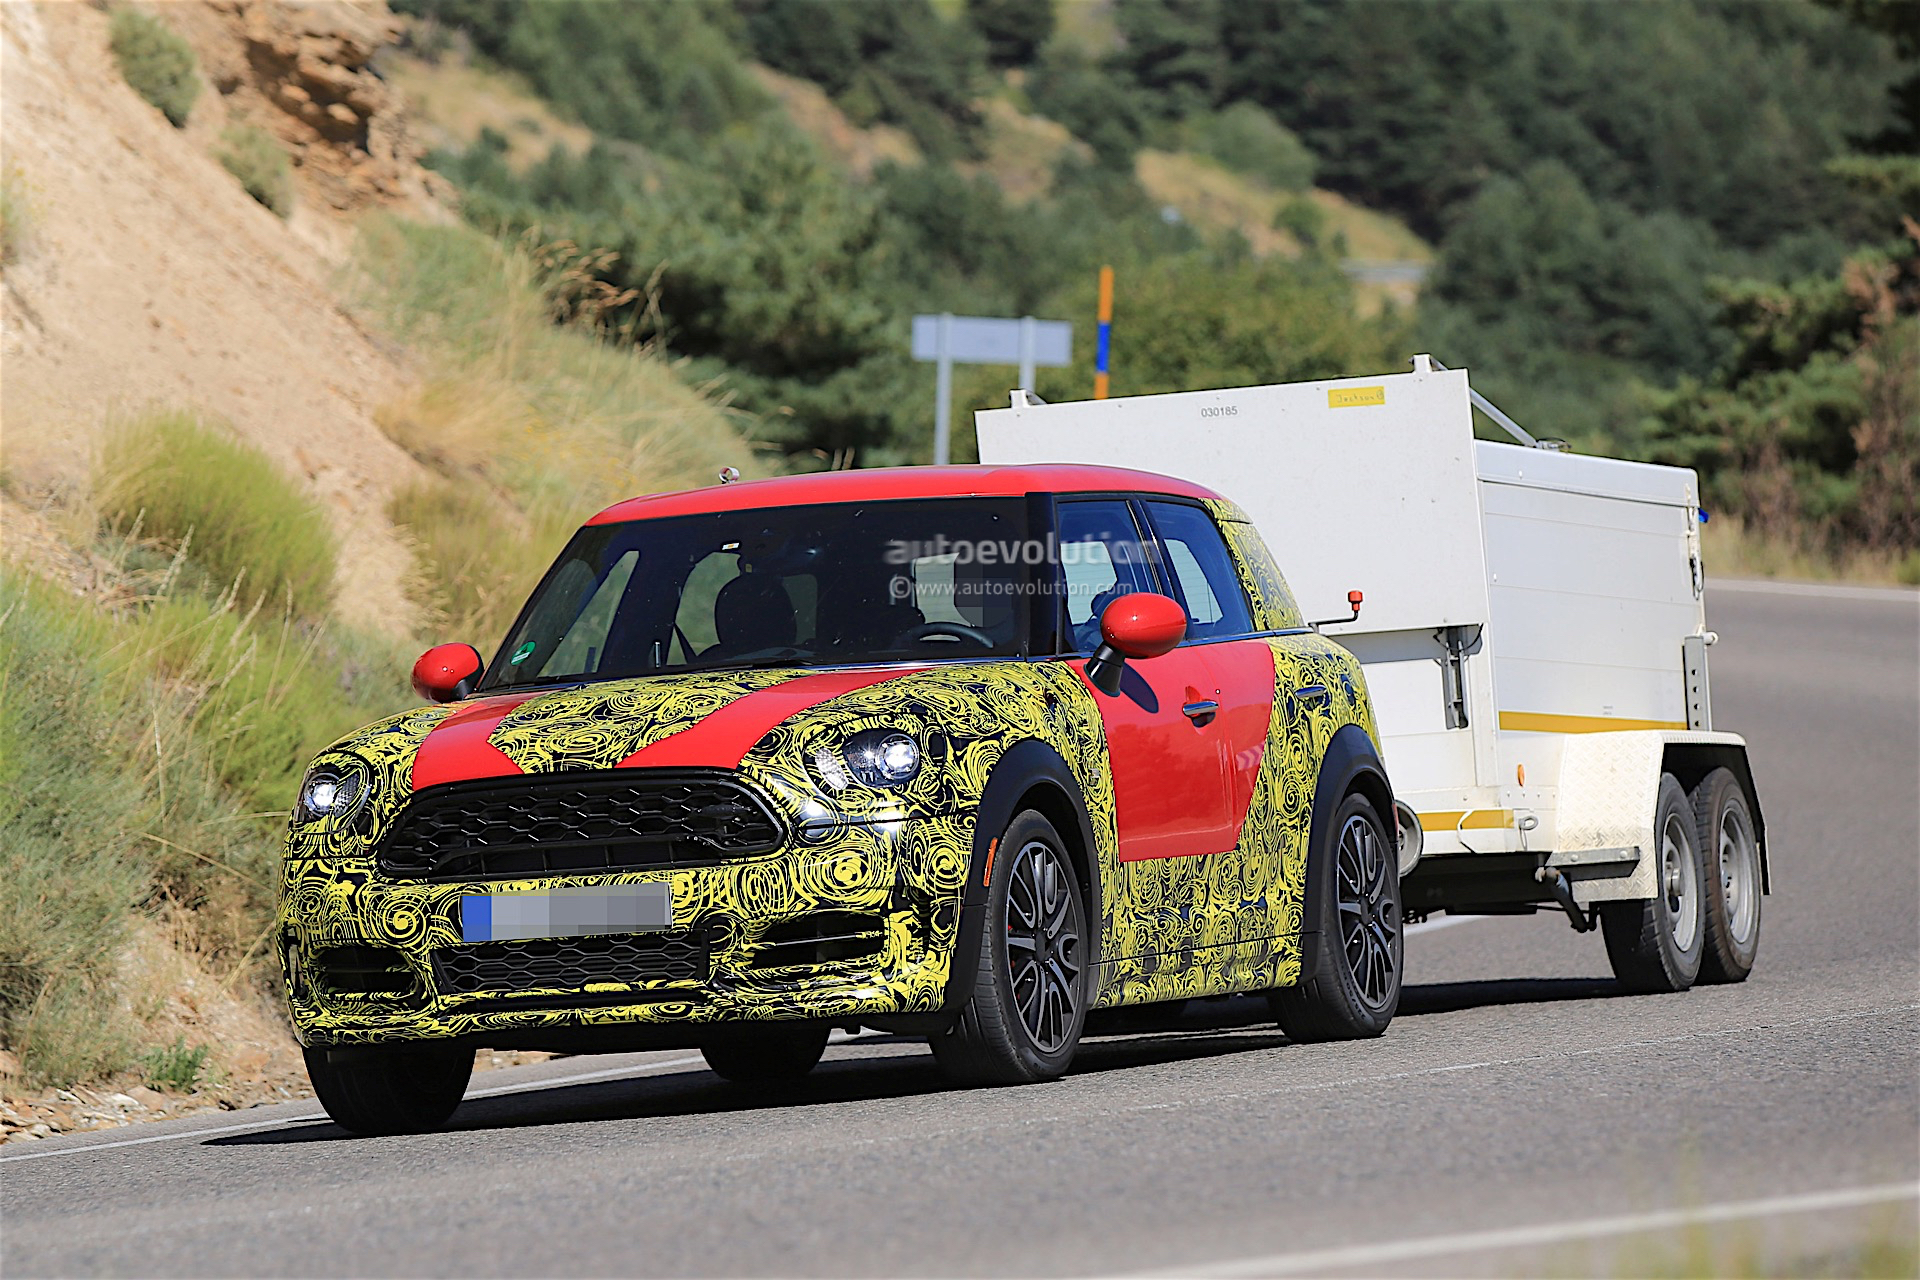 2017 mini countryman spied while towing looks ready for production 2015 mini cooper forum. Black Bedroom Furniture Sets. Home Design Ideas